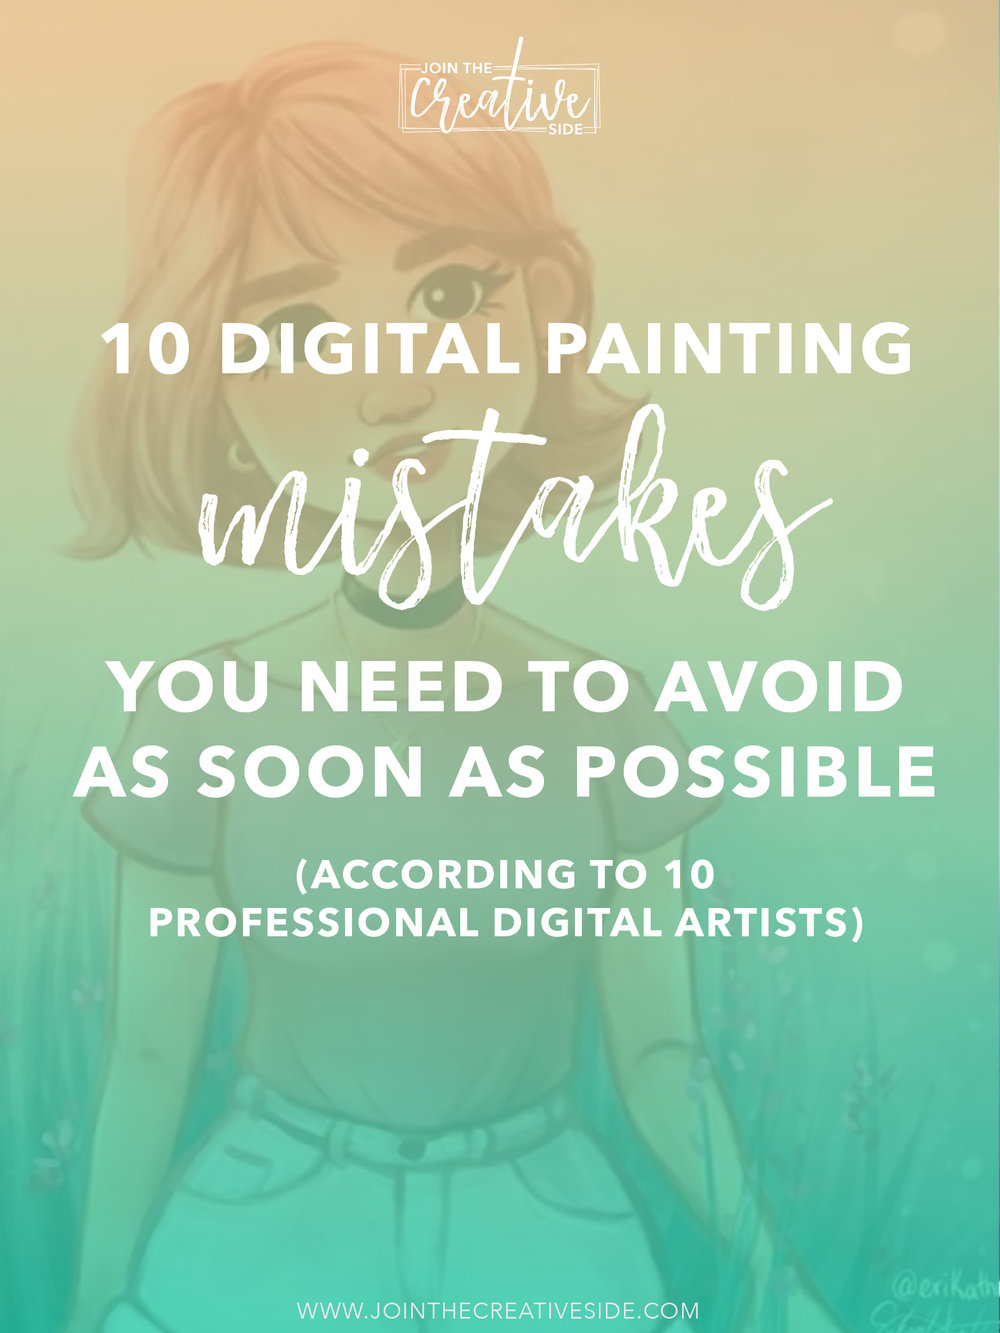 Join The Creative Side | 10 Digital artists share mistakes they wish they knew earlier when they started digital painting | In this blog post, I have teamed up with 9 other digital artists to share the things we wish we knew earlier about digital painting. #Art #artist #drawing #painting #digitaldrawing #digitalpainting